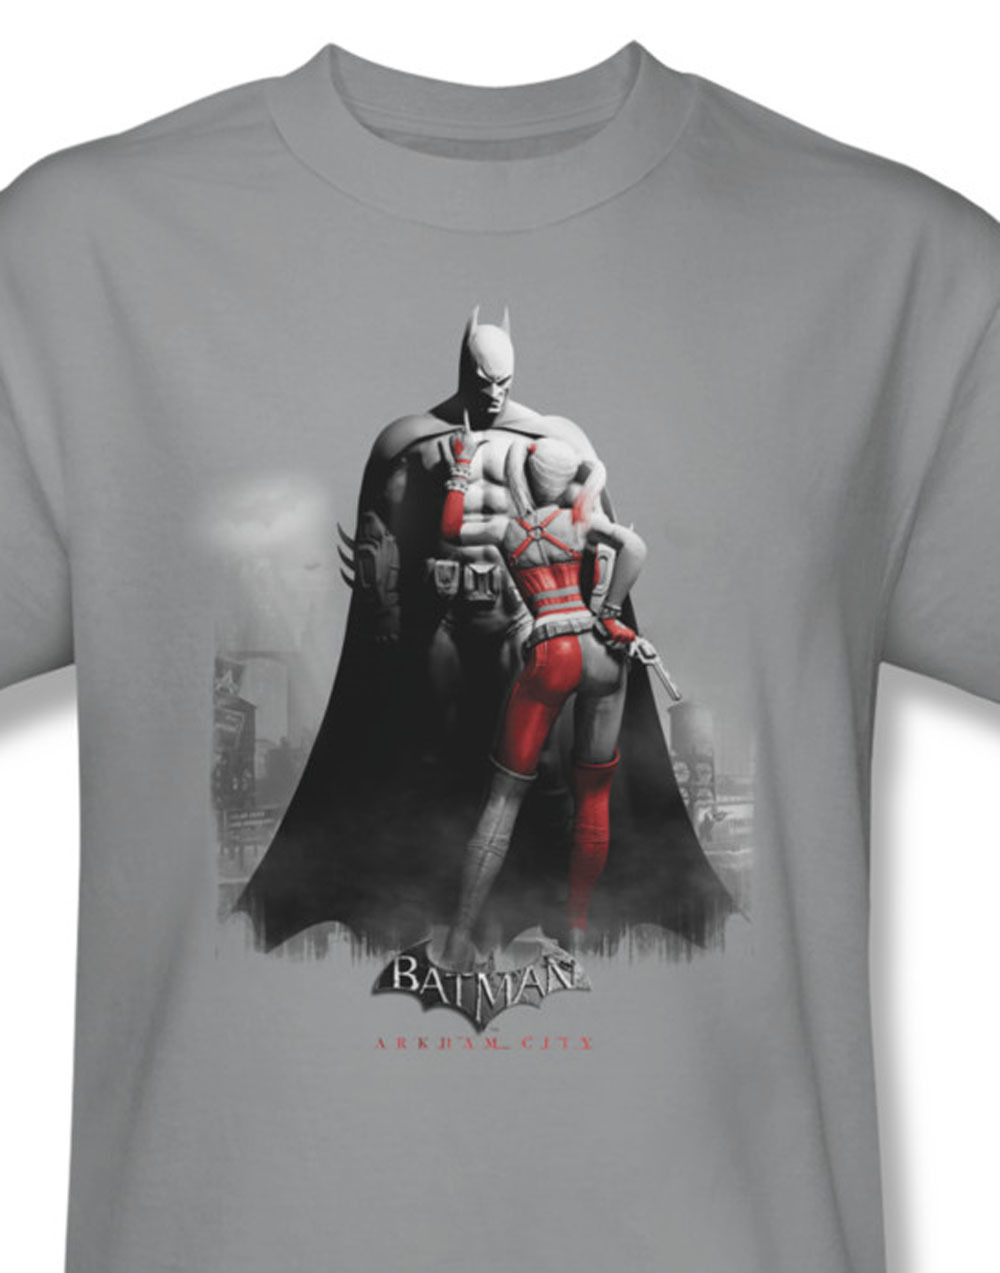 At dc comics batman and harley quinn graphic tee arkham city for sale online gray graphic tshirt